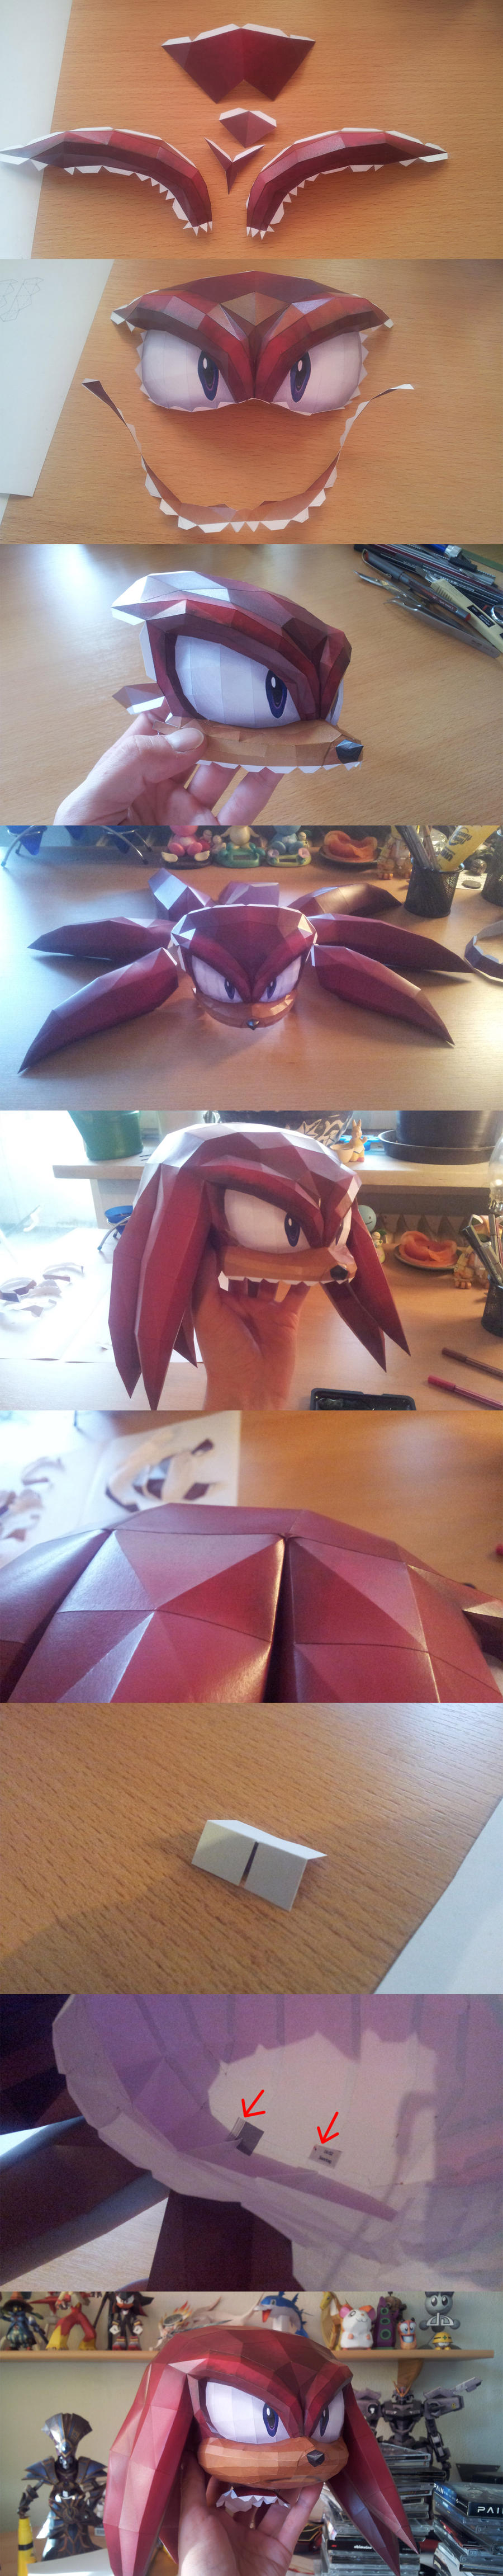 Knuckles - Head (+tipps) by Destro2k